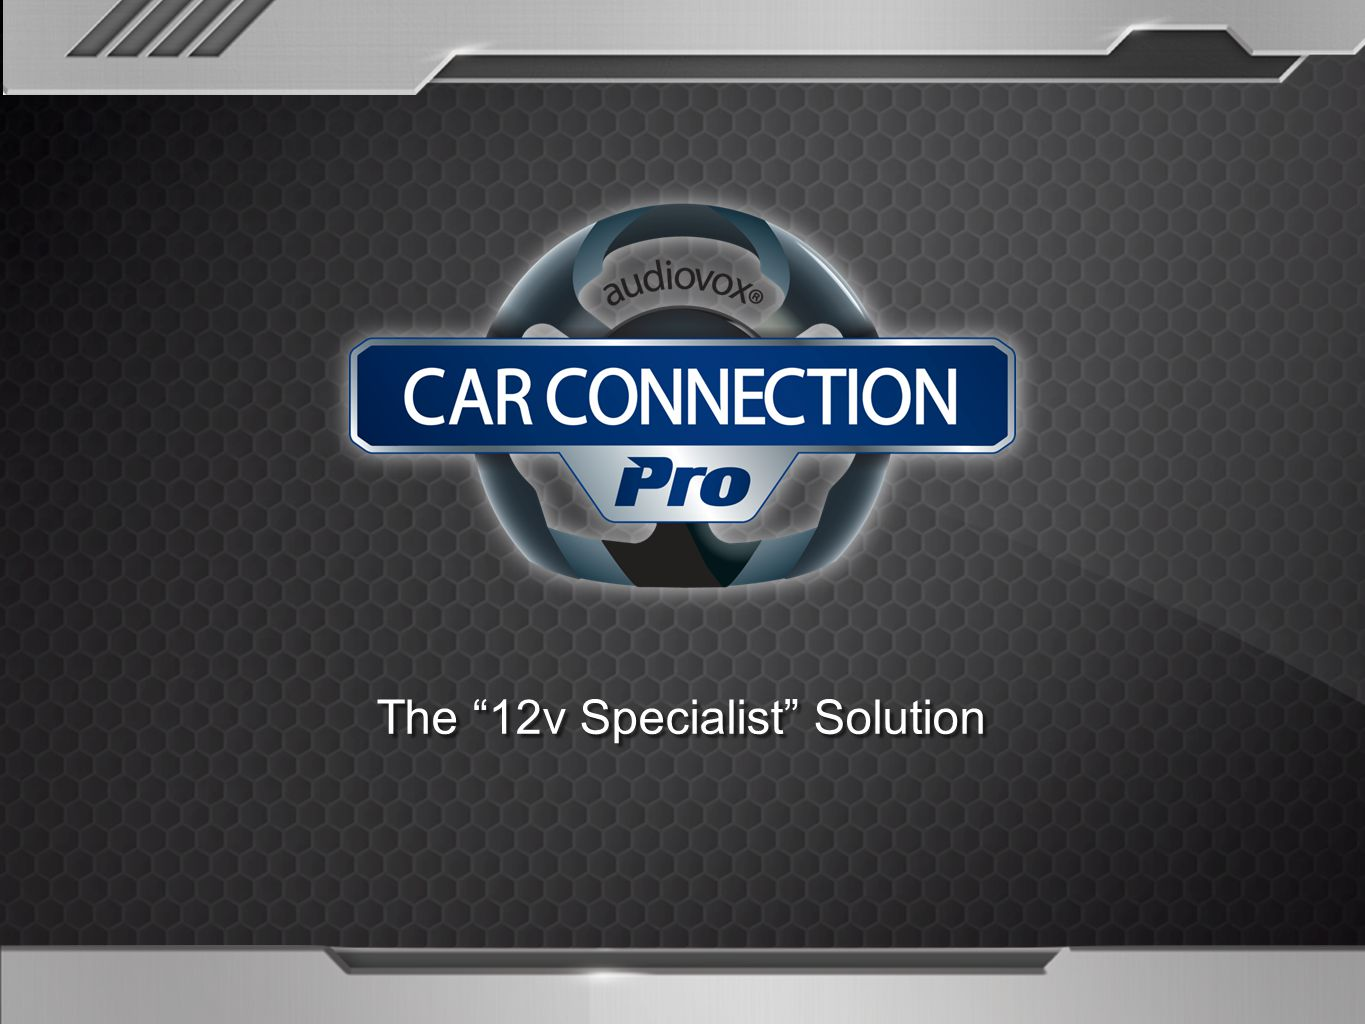 The 12v Specialist Solution